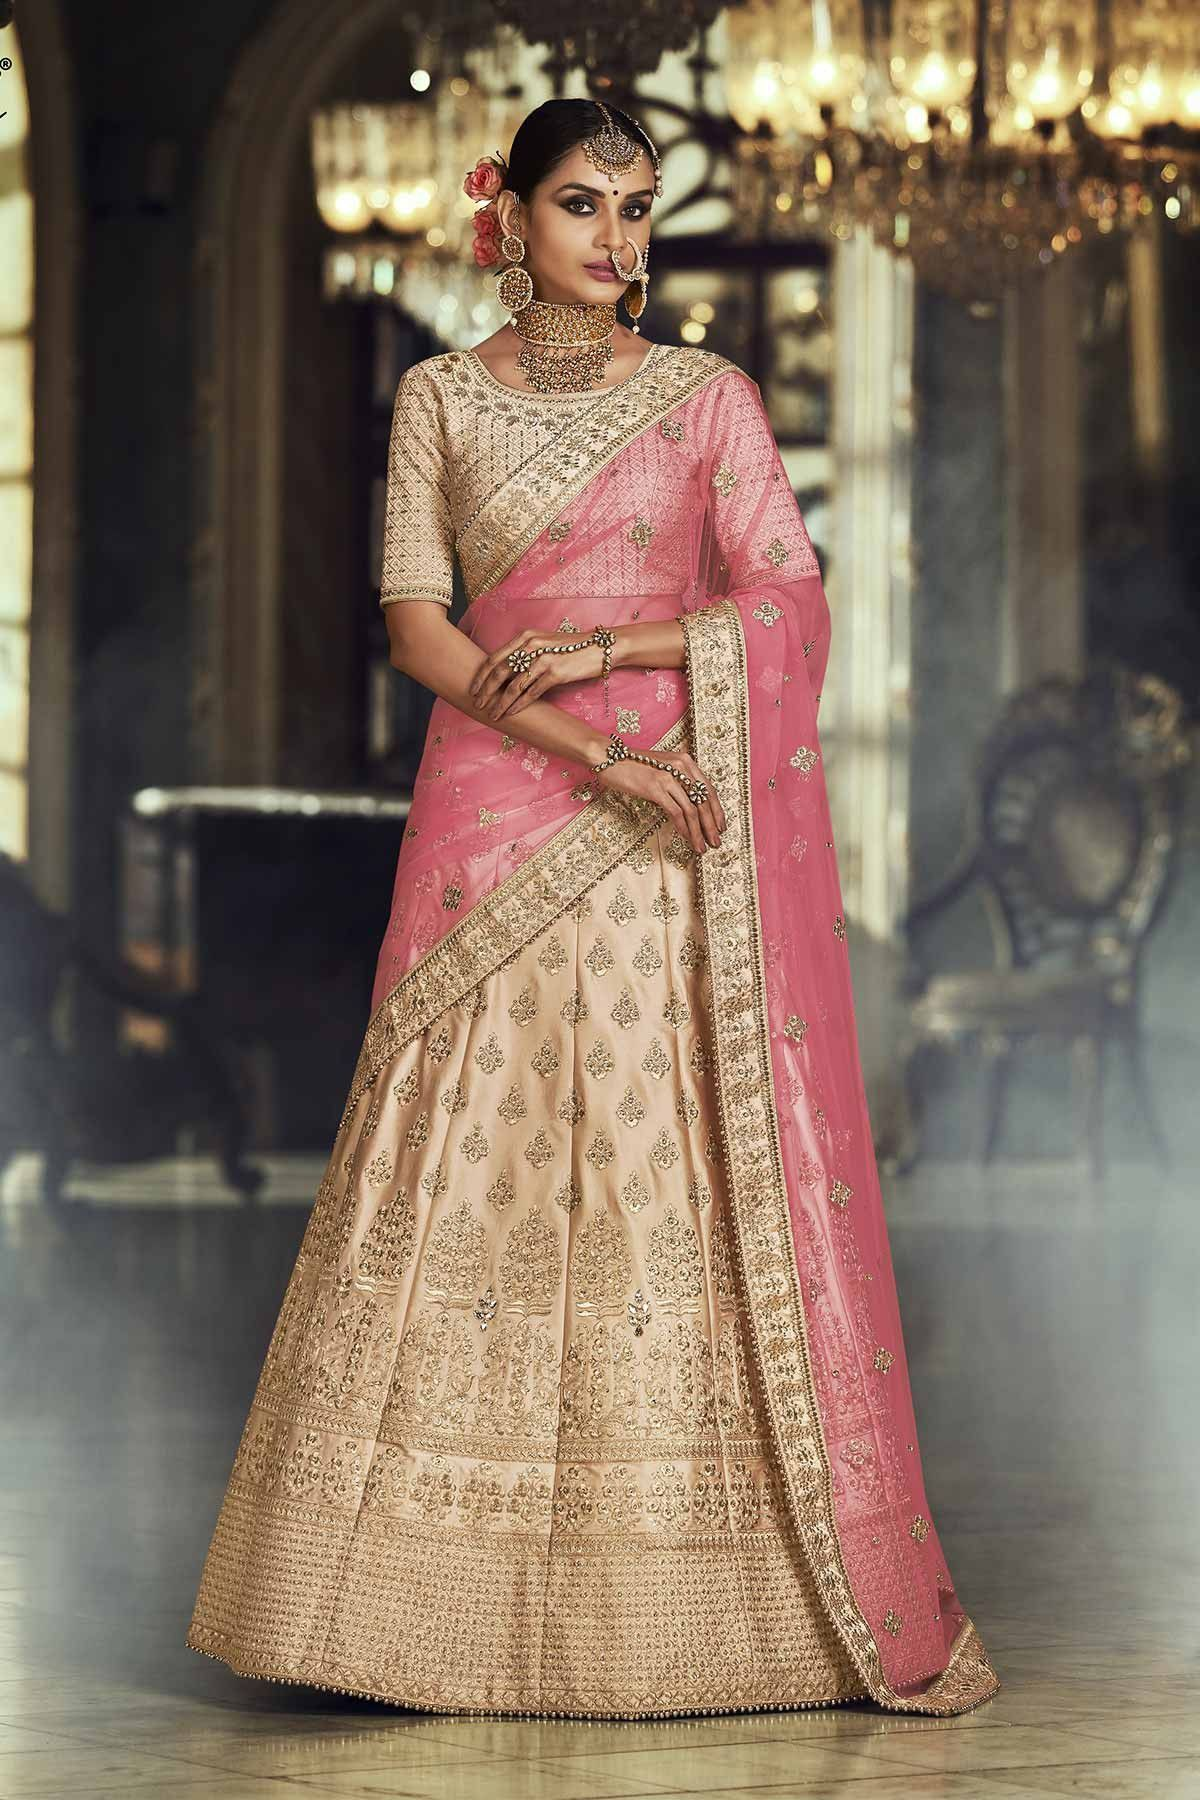 de7ae6d78 Buy Chickoo and pink satin silk Indian wedding lehenga in UK